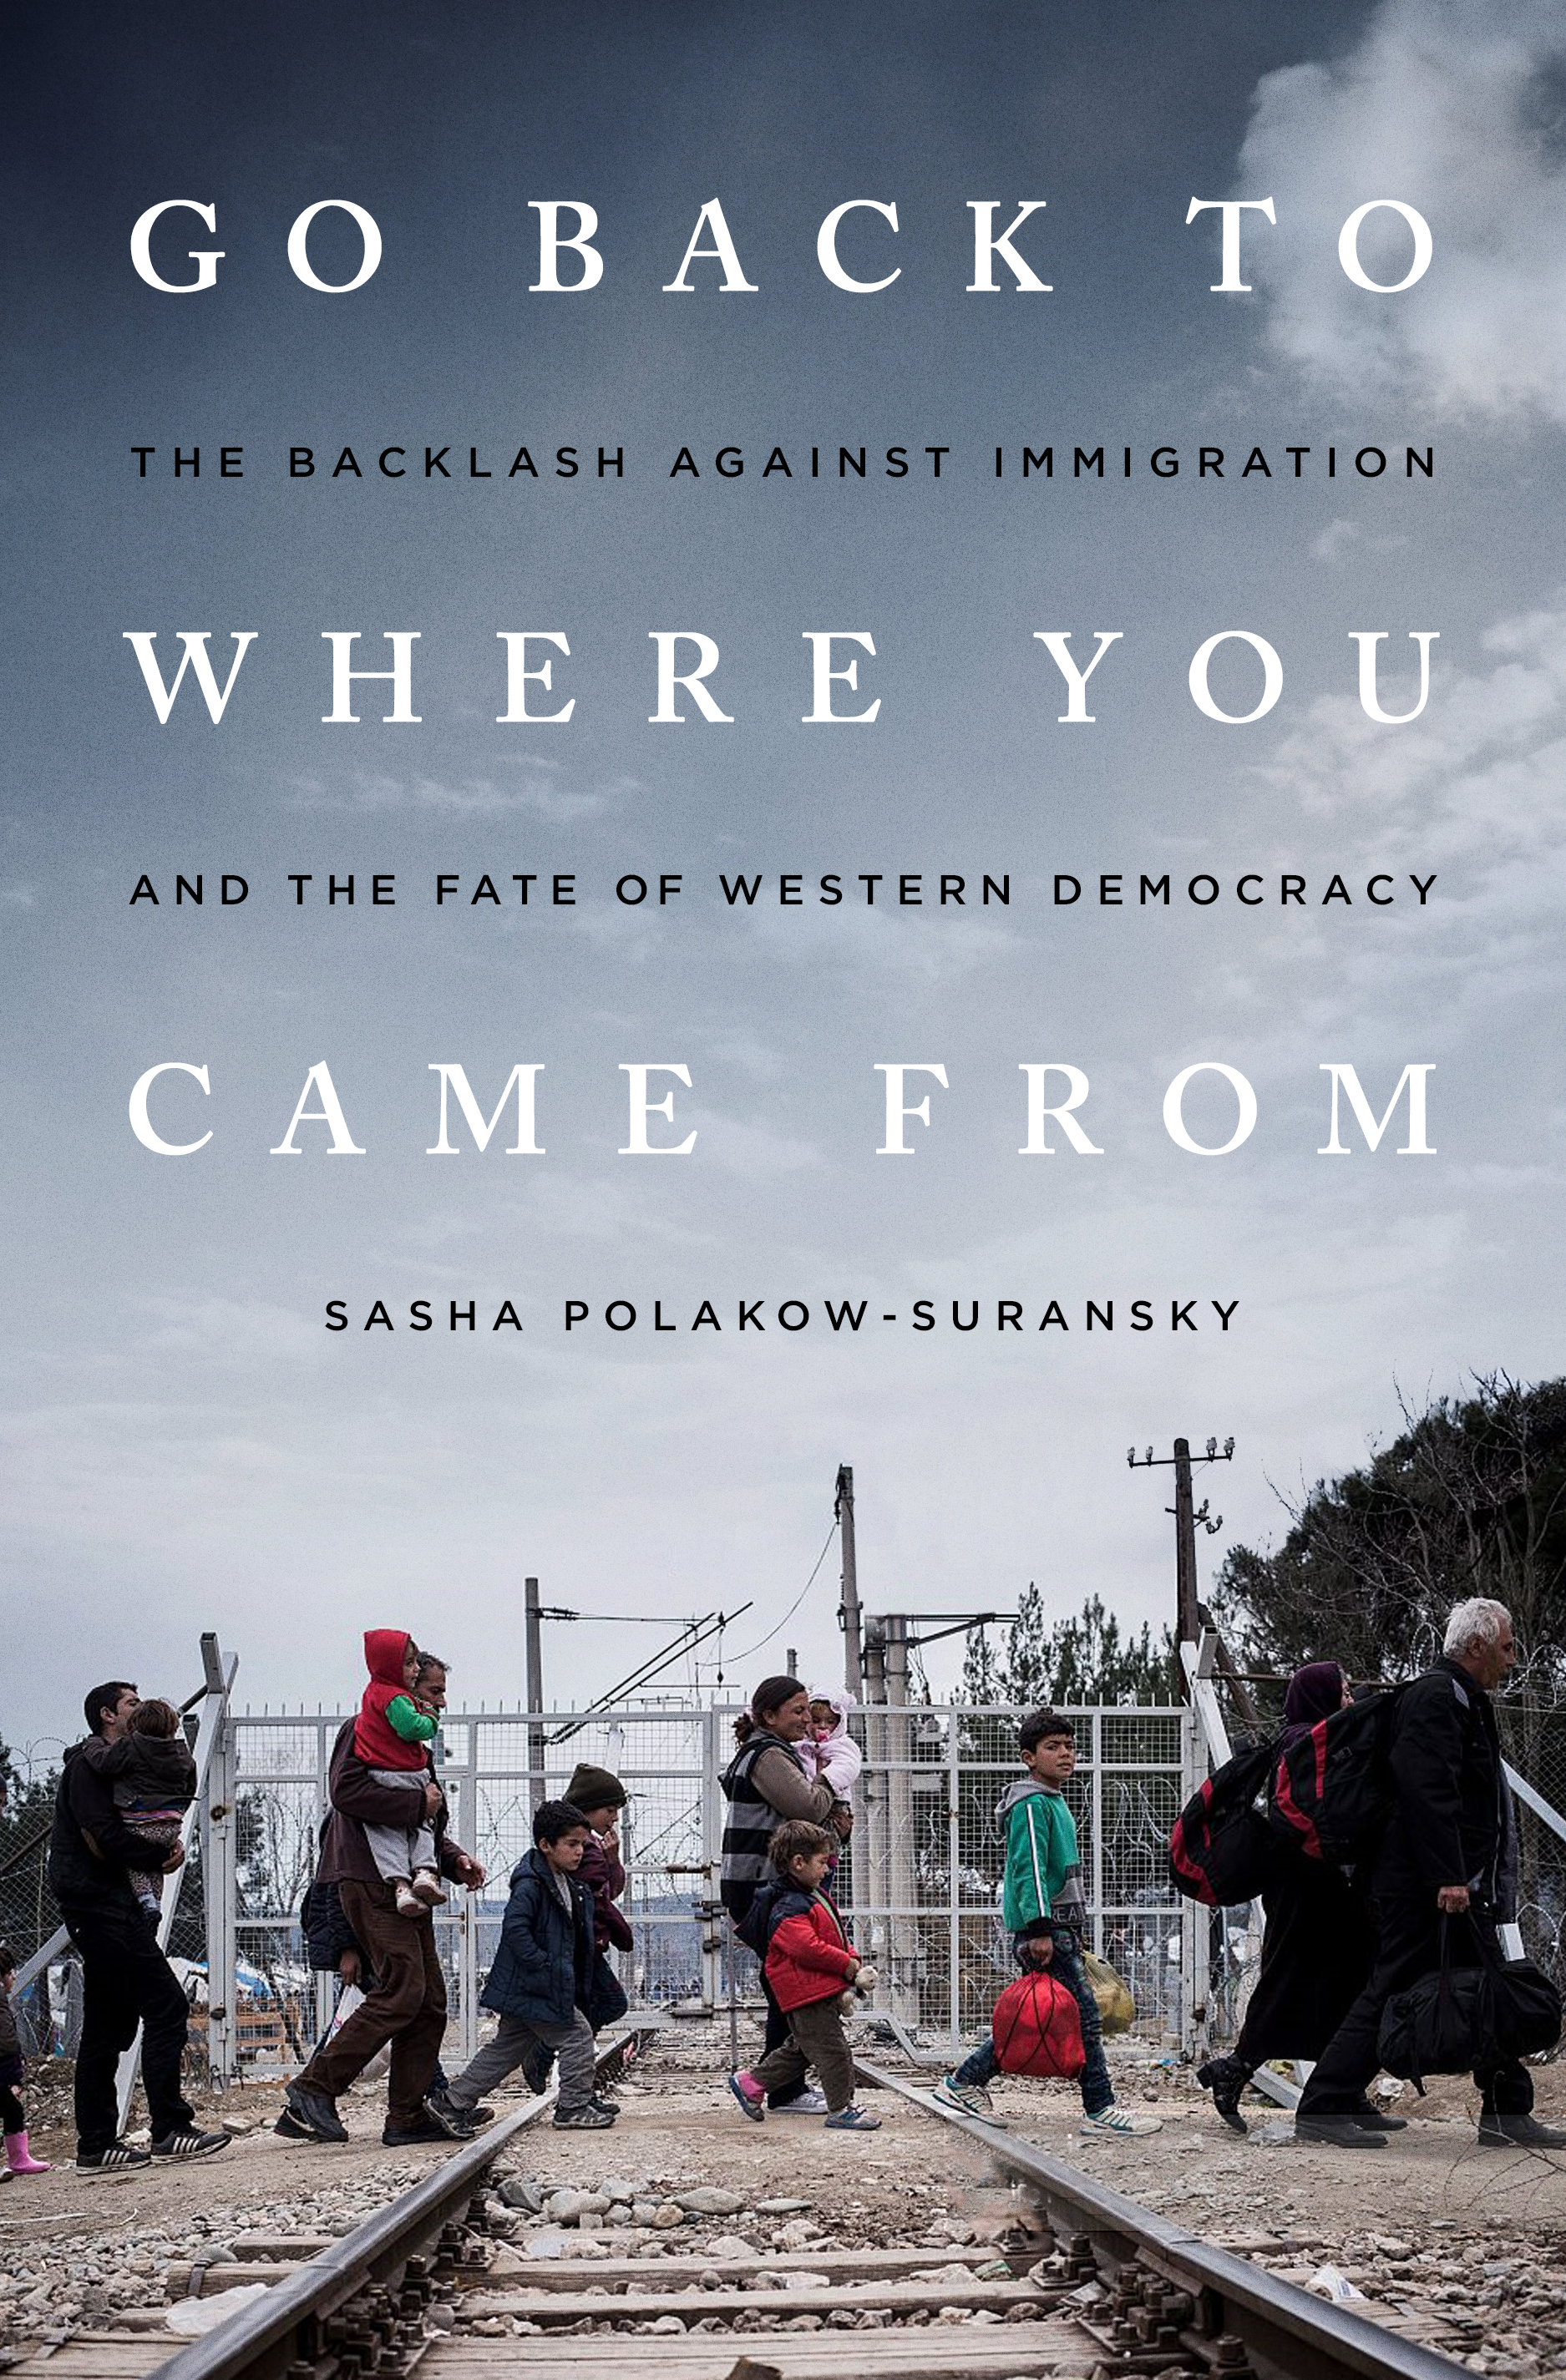 Book Launch: Go Back to Where You Came From by Sasha Polakow-Suransky — in conversation w/ Daniel Kurtz-Phelan